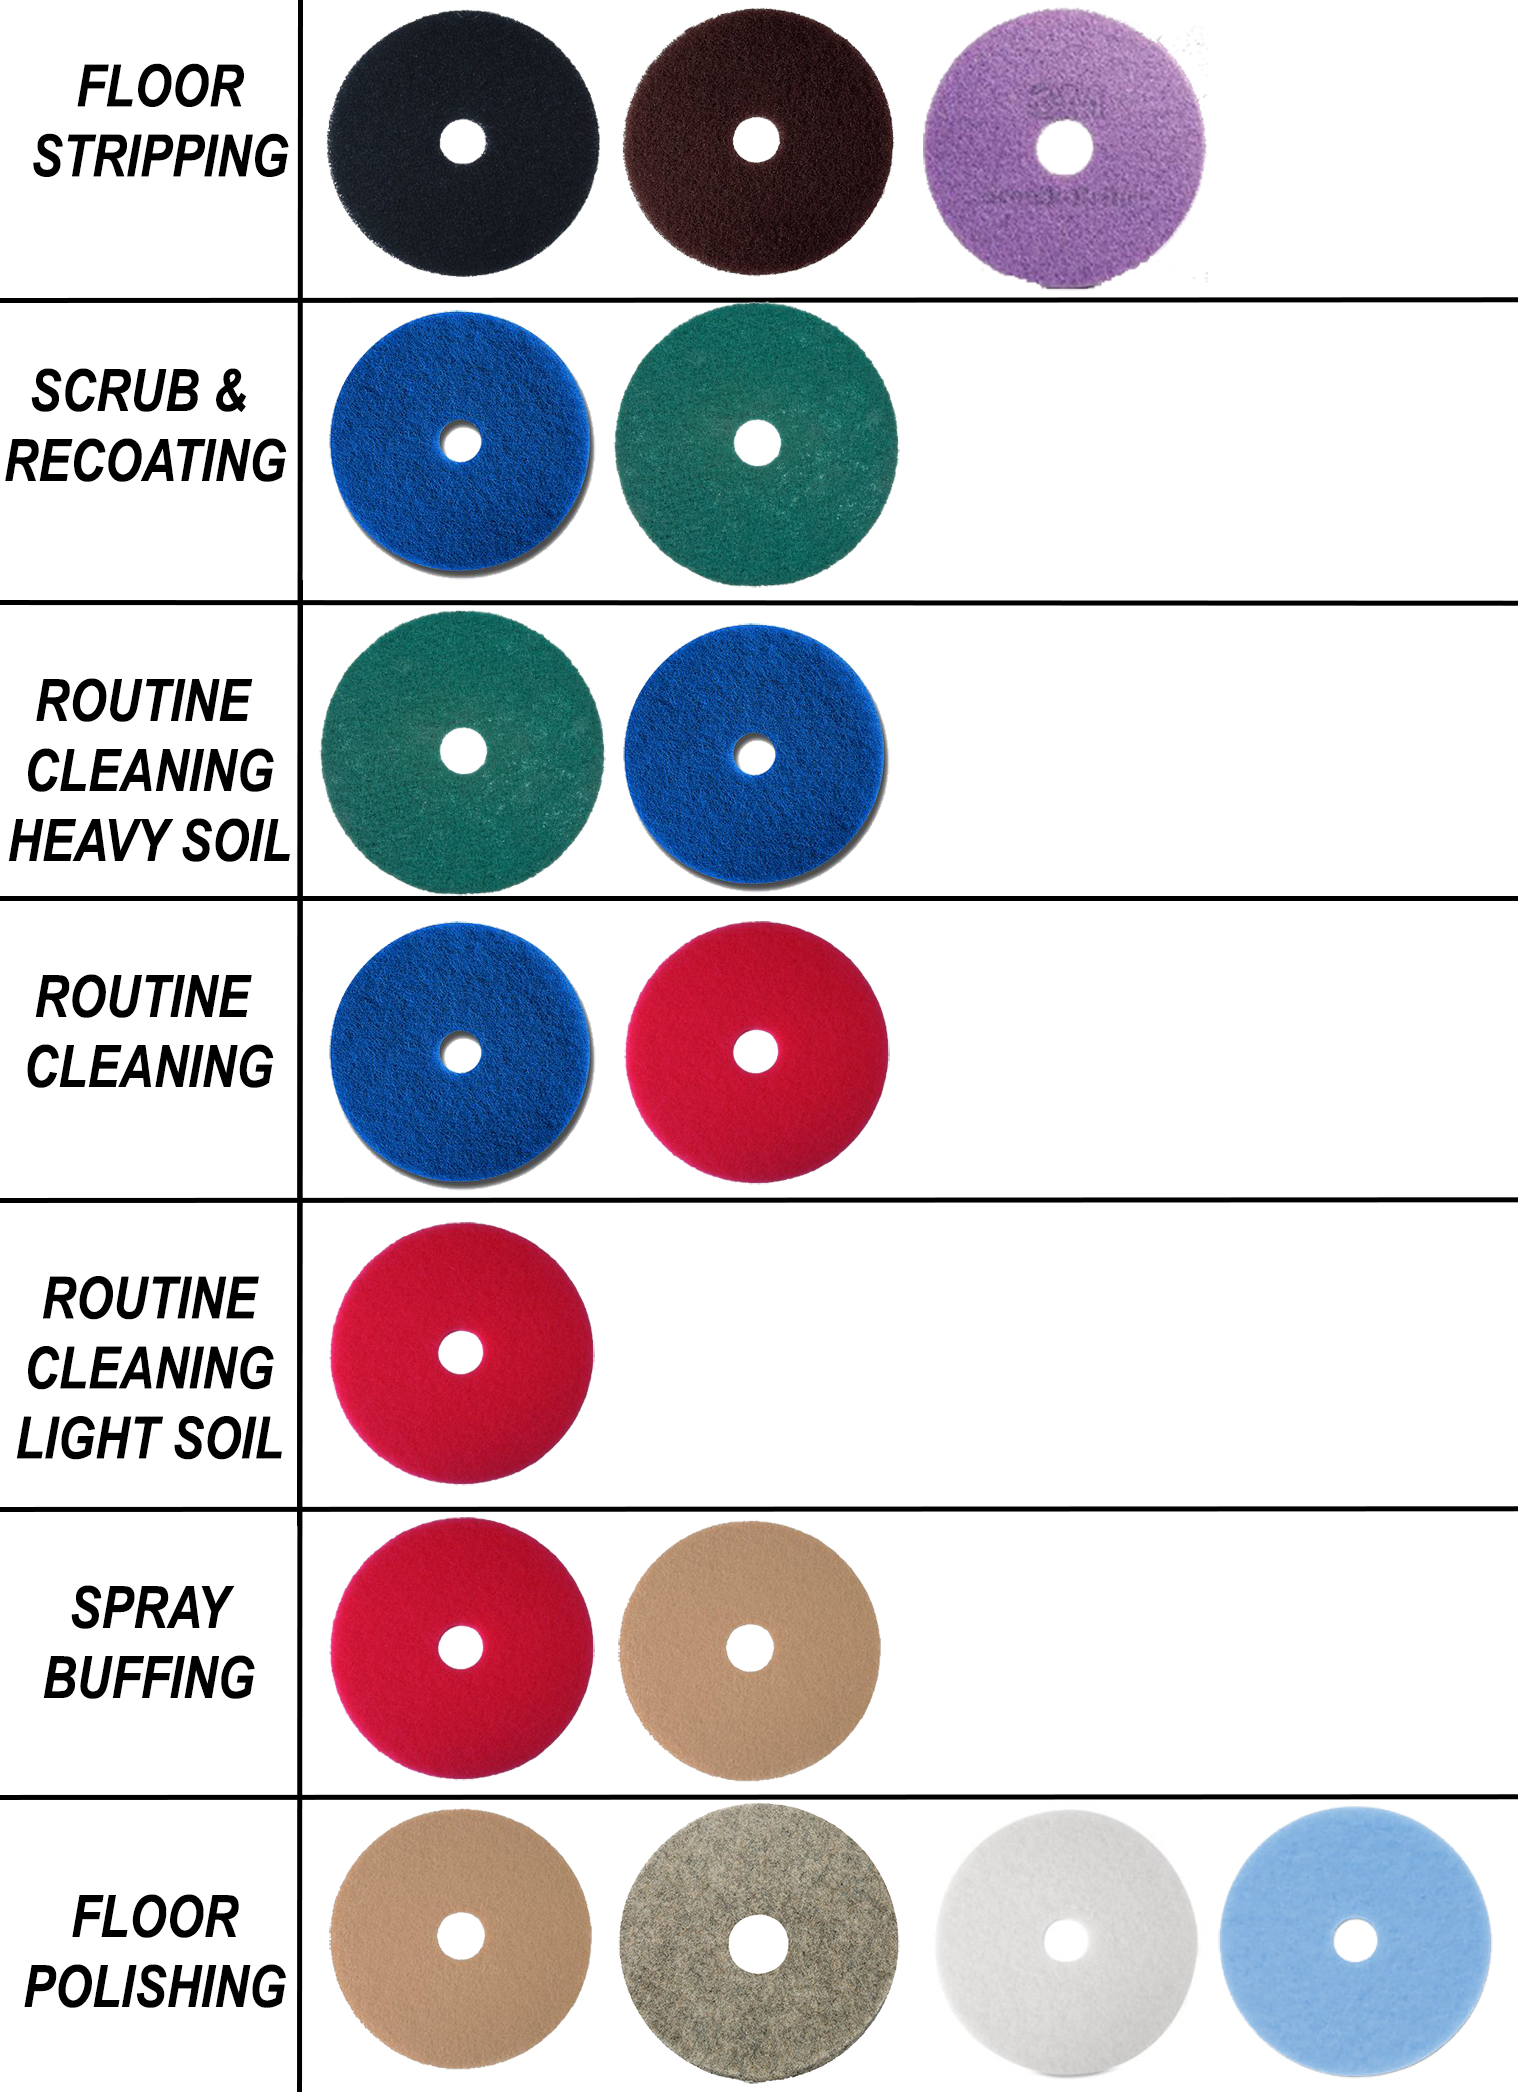 Floor Buffing Pad Colors How To Select The Correct Color